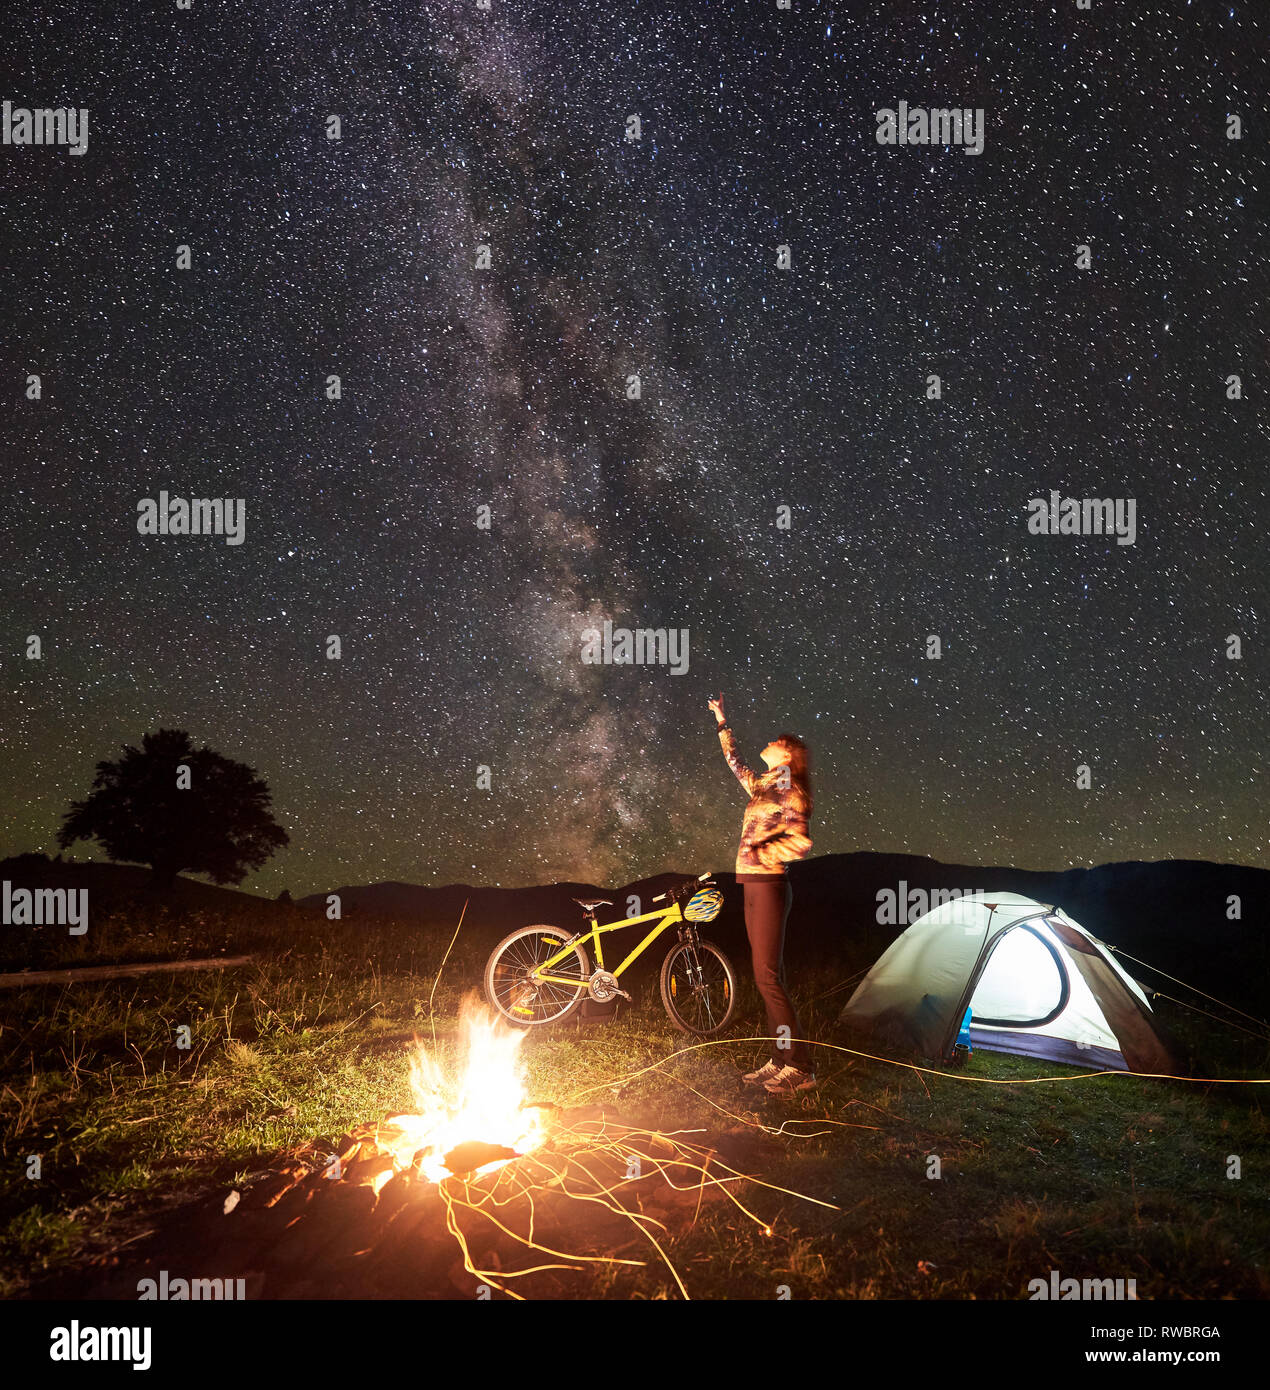 Young woman tourist resting at night camping, pointing at incredible beautiful evening sky full of stars and Milky way, standing near burning campfire, illuminated tent, mountain bike. Tourism concept - Stock Image